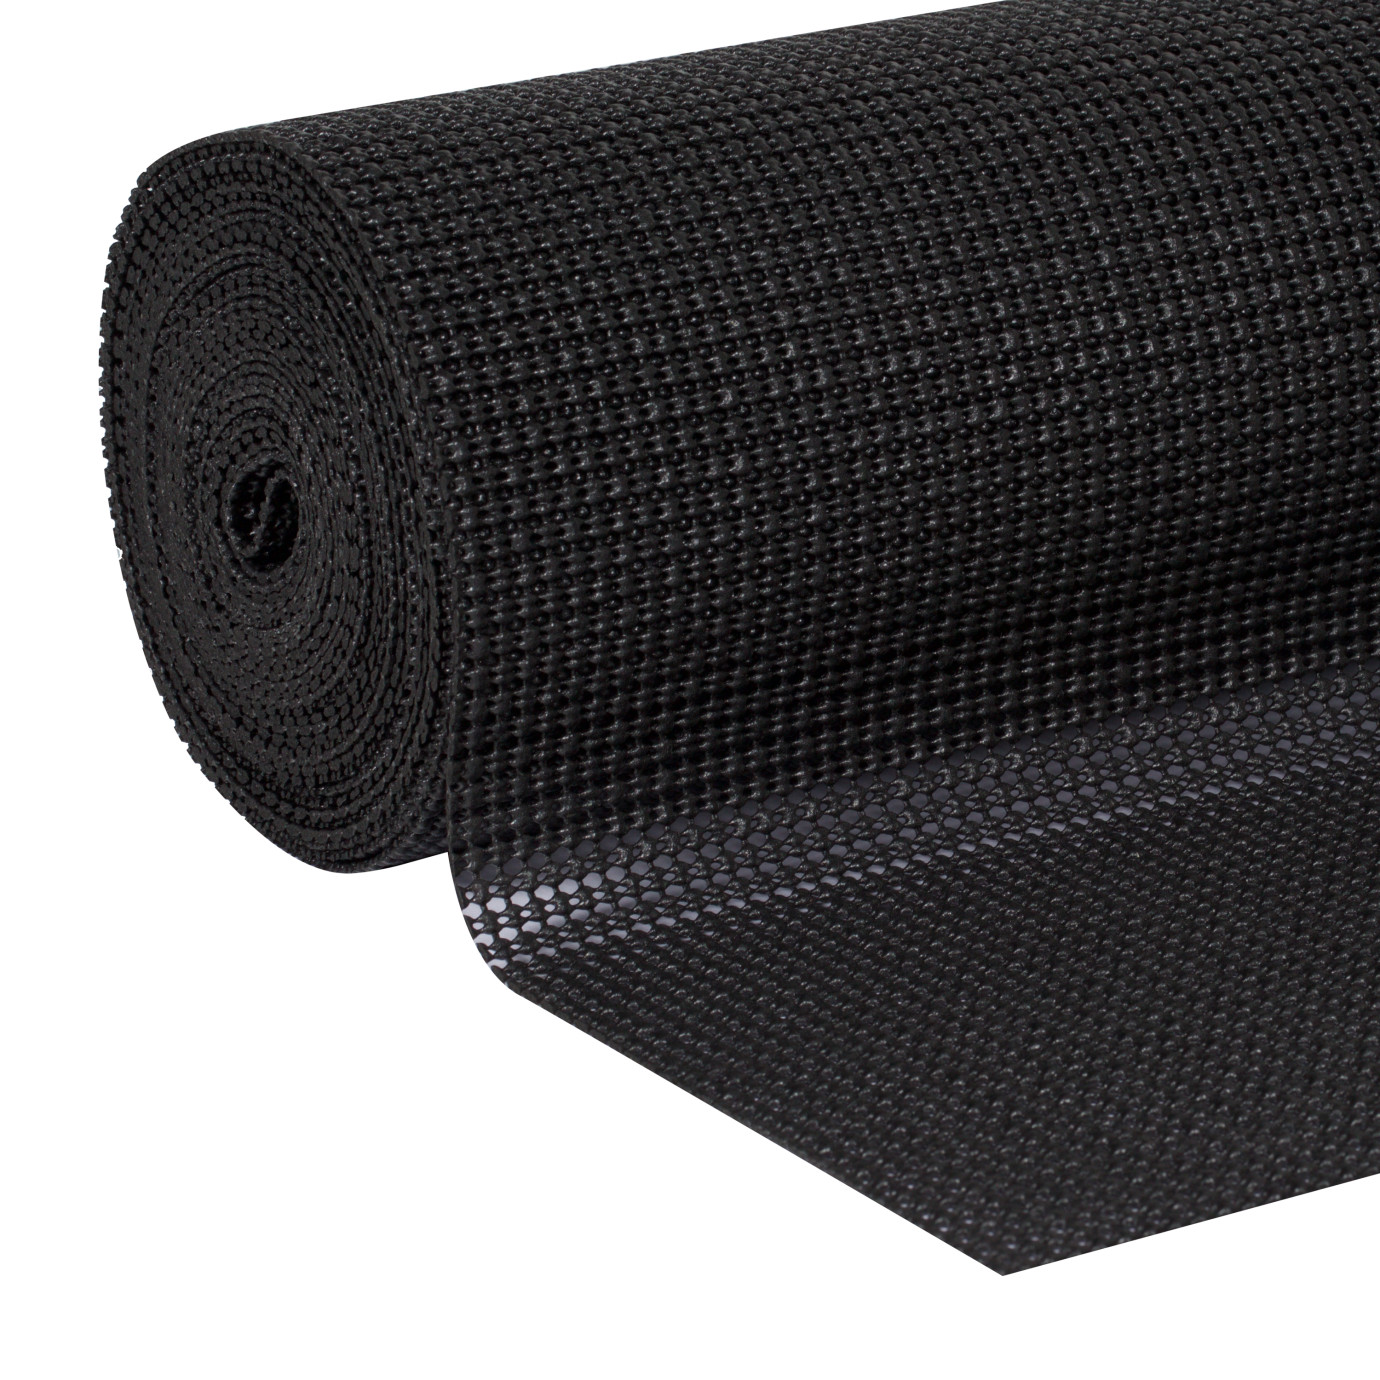 Select Grip Easy Liner Brand Shelf Liner - Black, 20 in. x 24 ft.